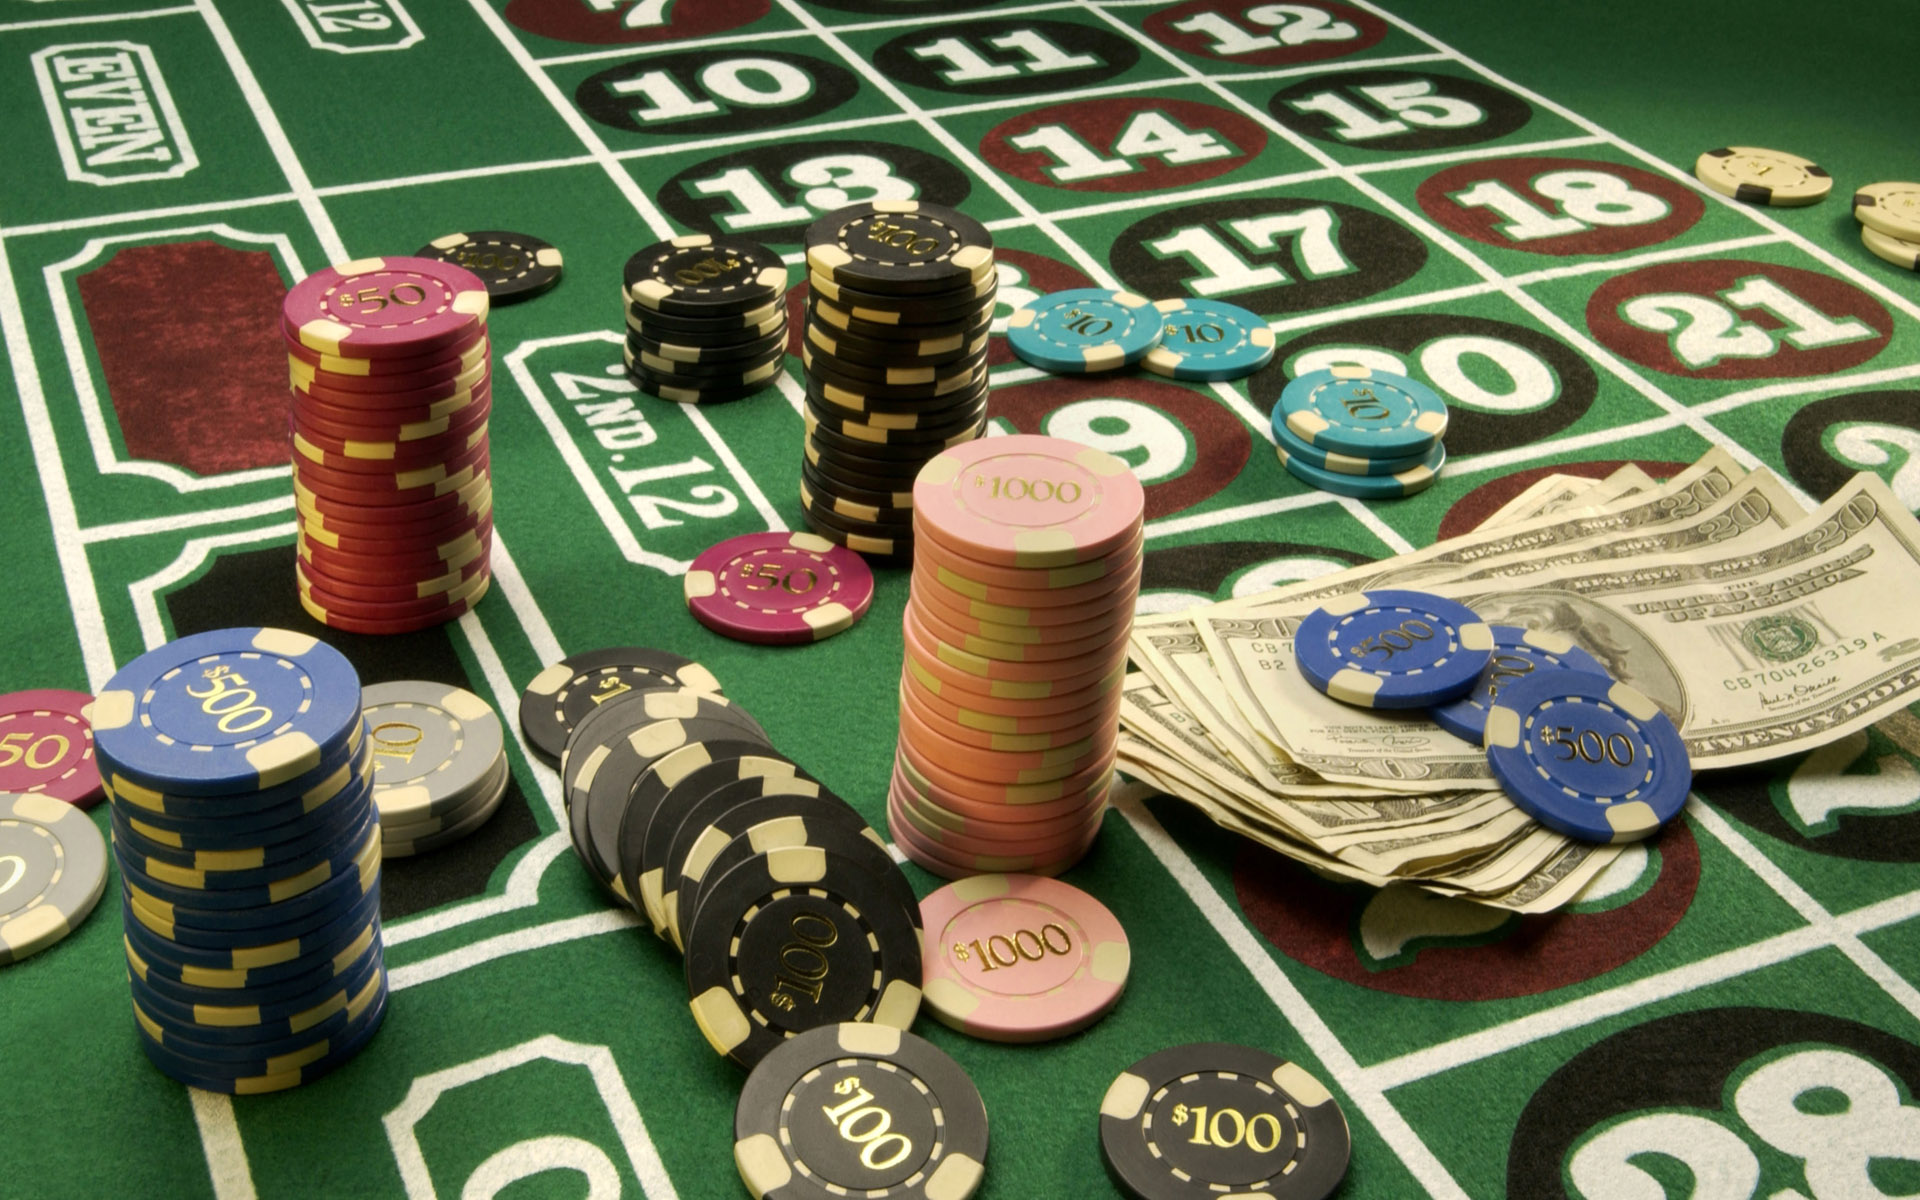 Online casino is a so famous game